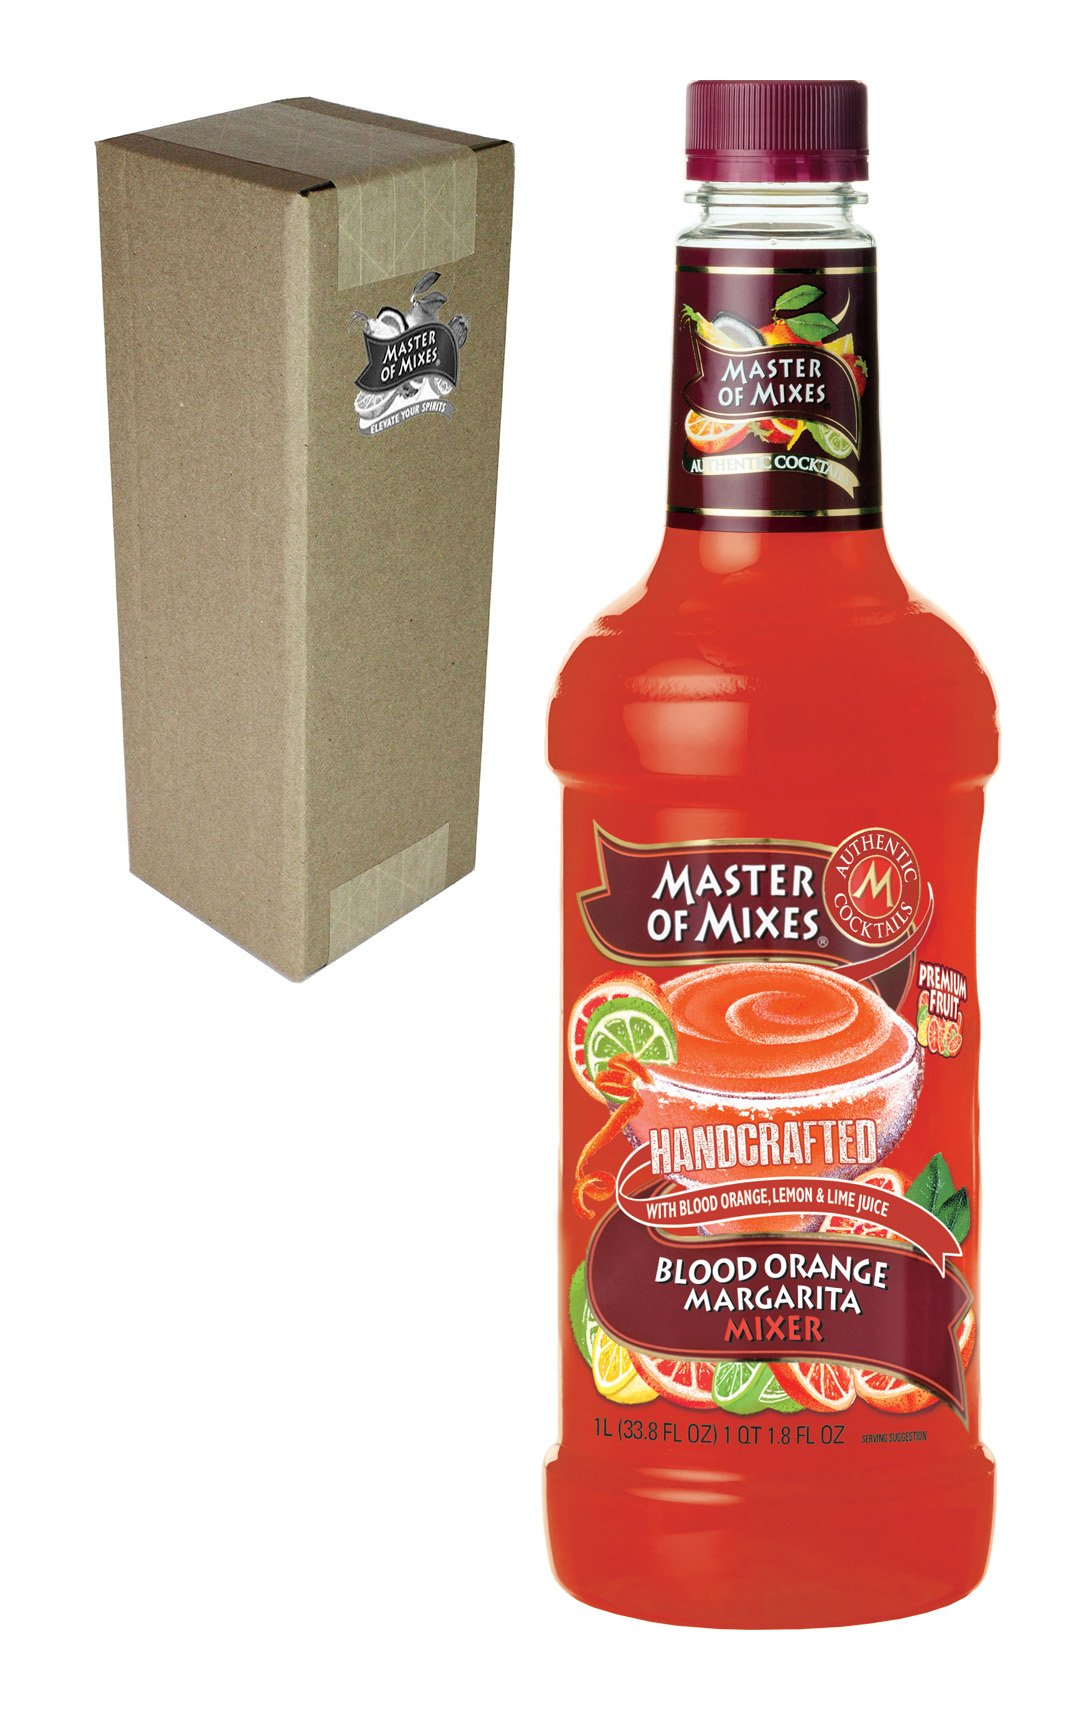 Master of Mixes Blood Orange Margarita Drink Mix, Ready To Use, 1 Liter Bottle (33.8 Fl Oz), Individually Boxed by Master of Mixes